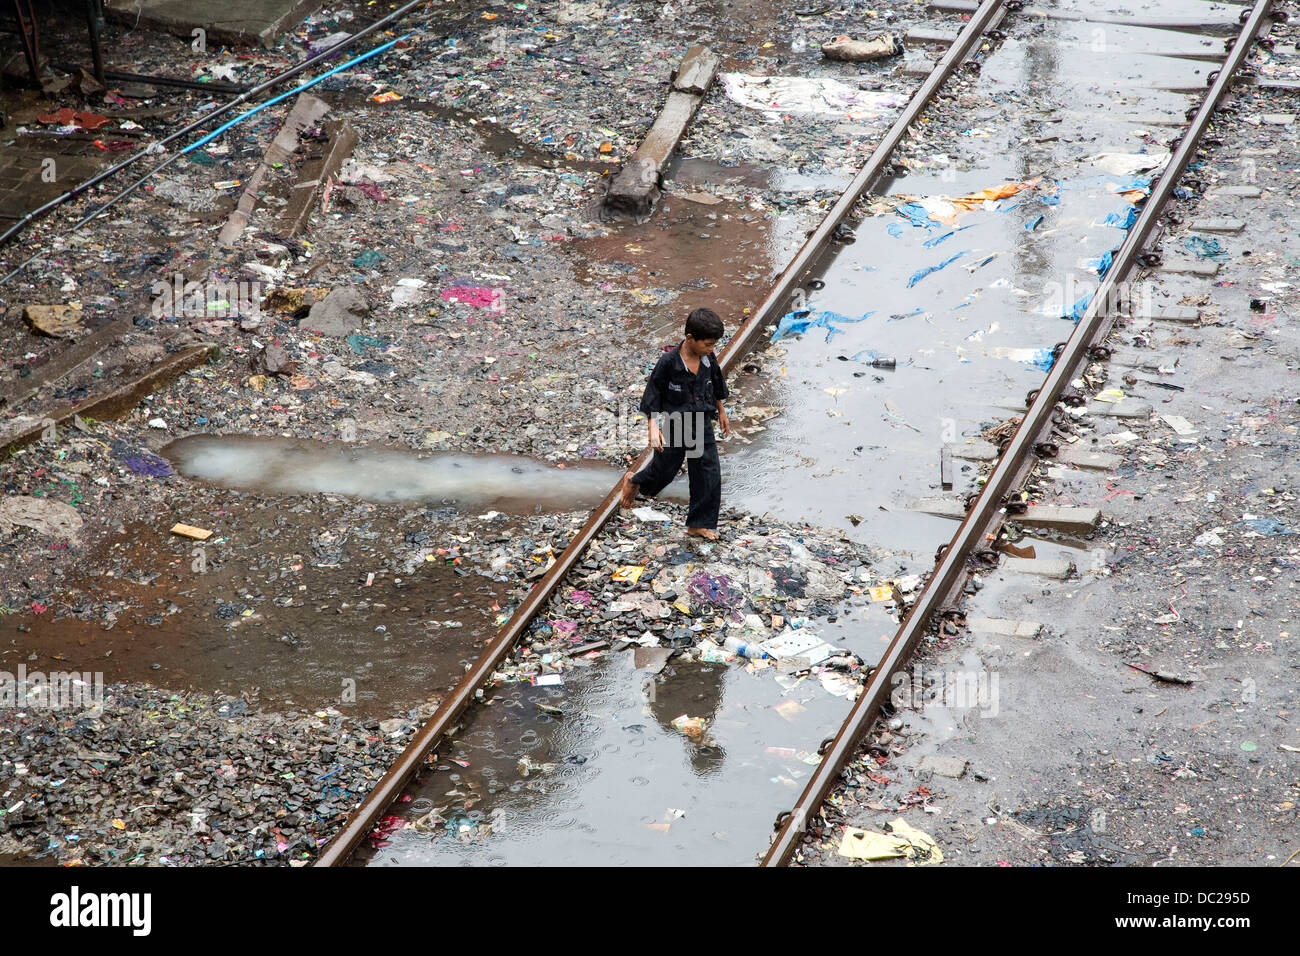 Boy walks through puddles and filth of Bandra slum area with train tracks running through - Stock Image